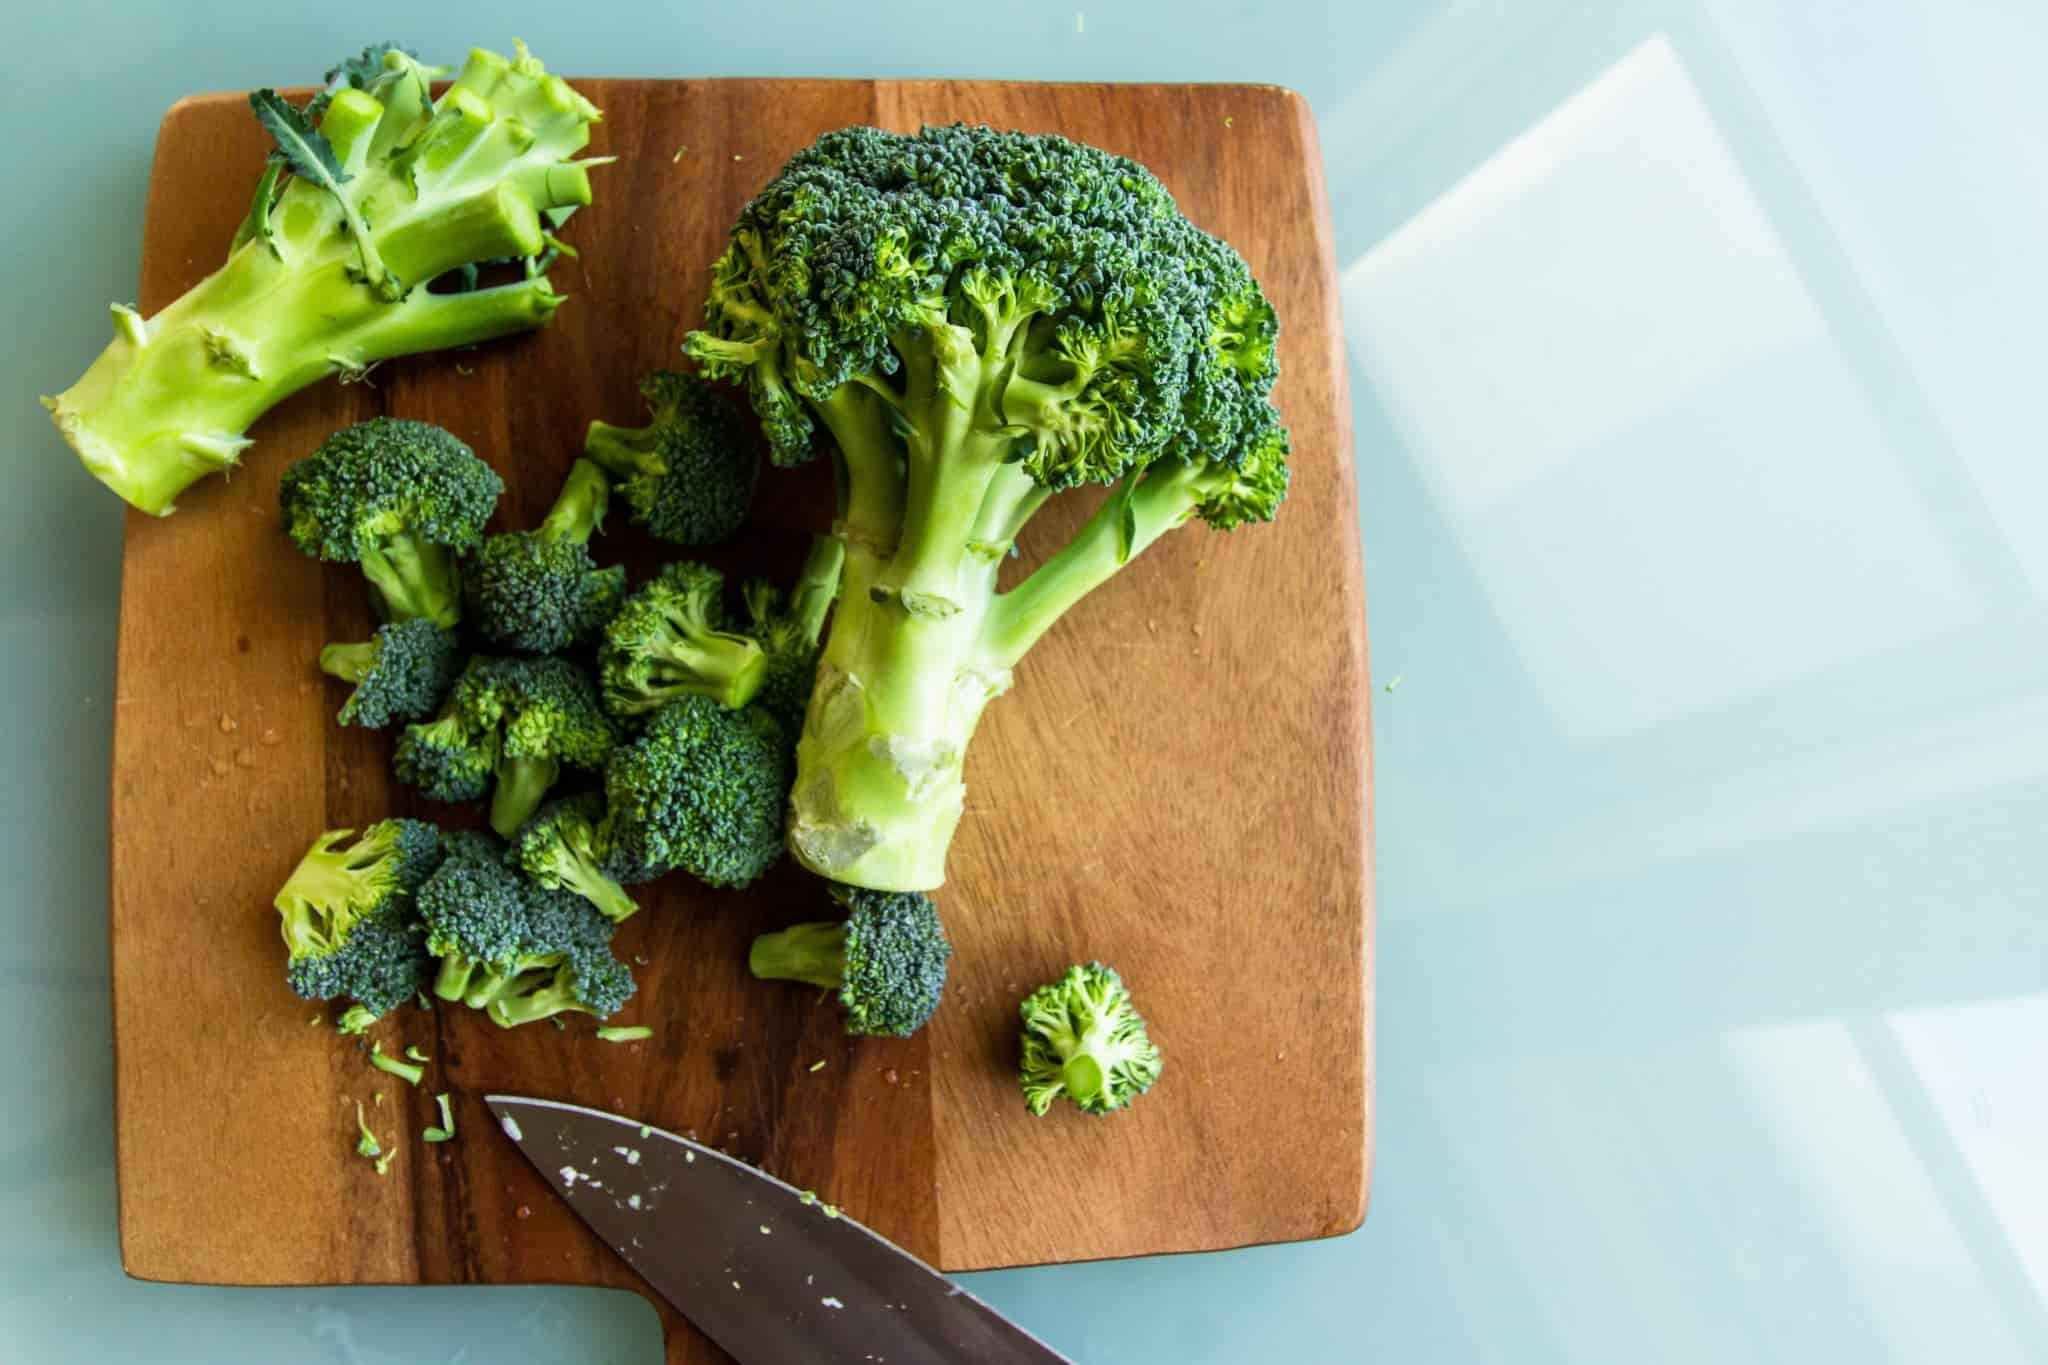 broccoli and a knife on a wooden chopping board